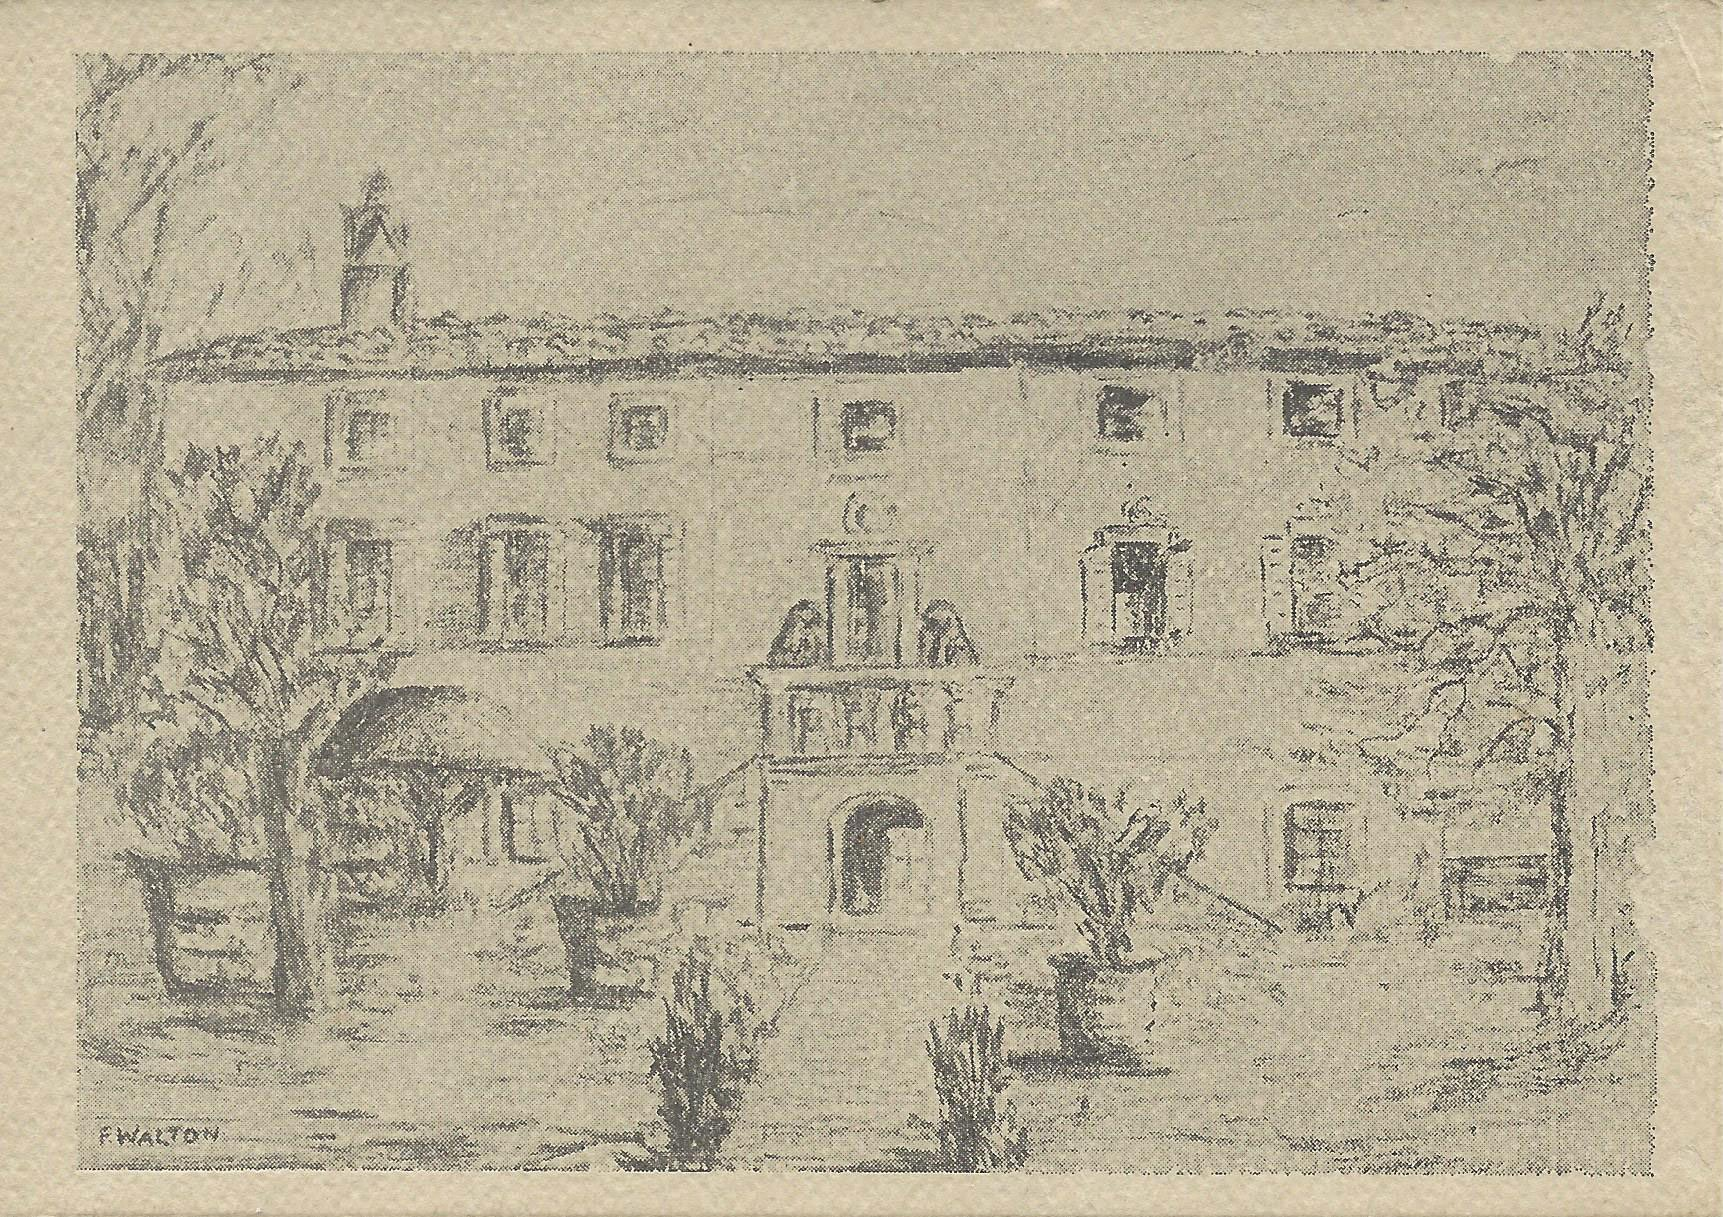 The Villa drawn by the english artist Richard Wen